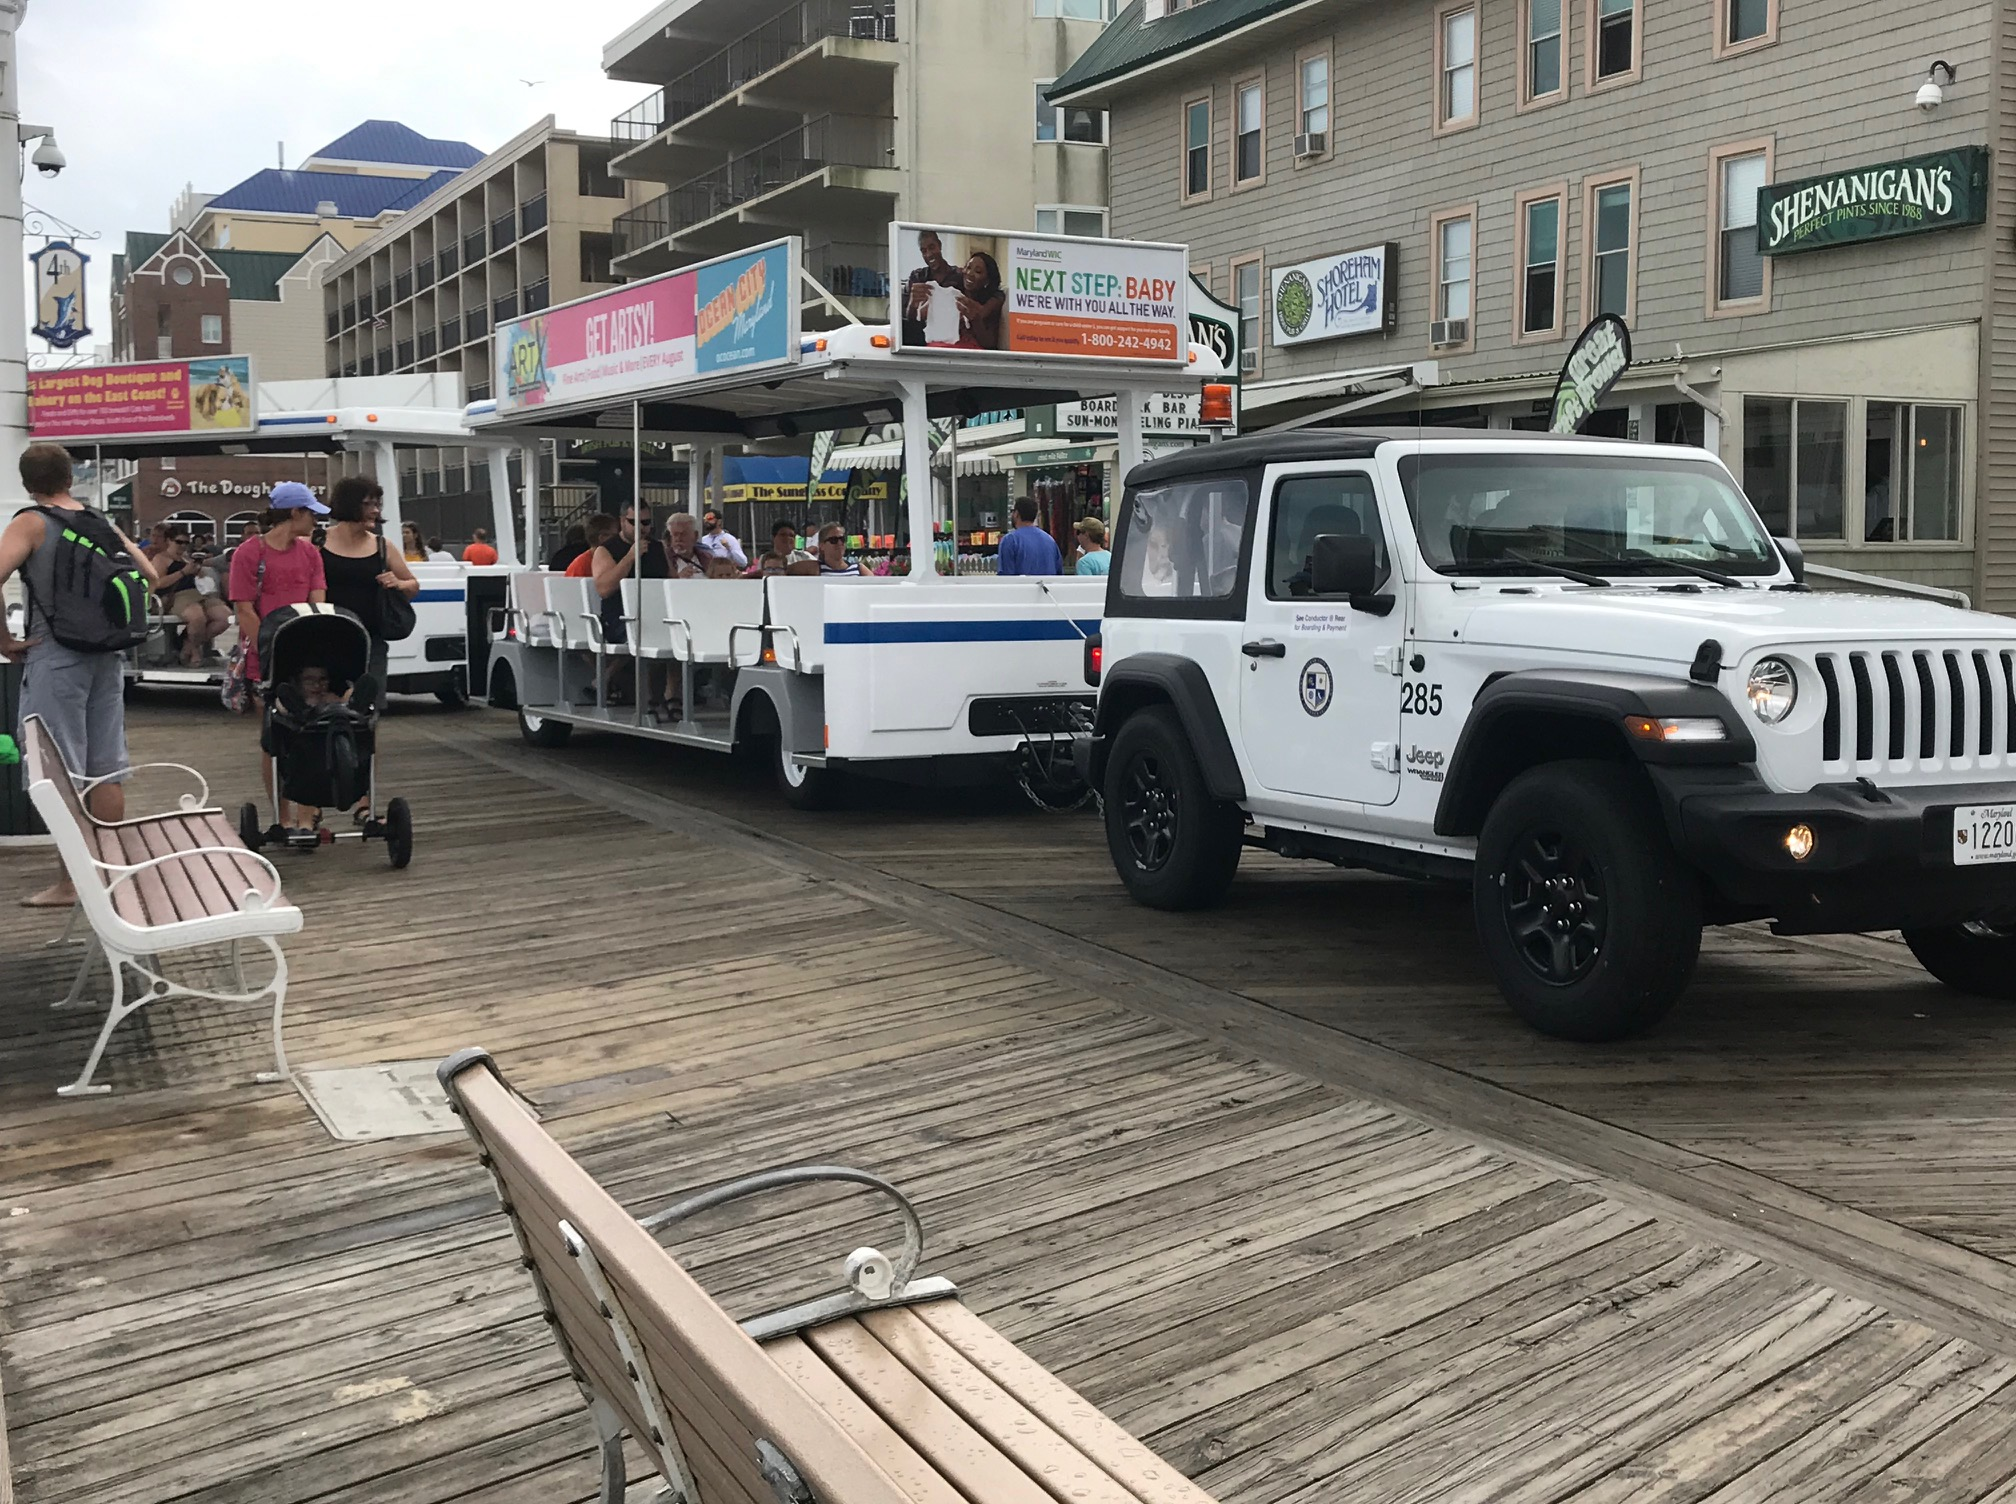 Late July Start Possible For Boardwalk Tram But No Official Decision Made